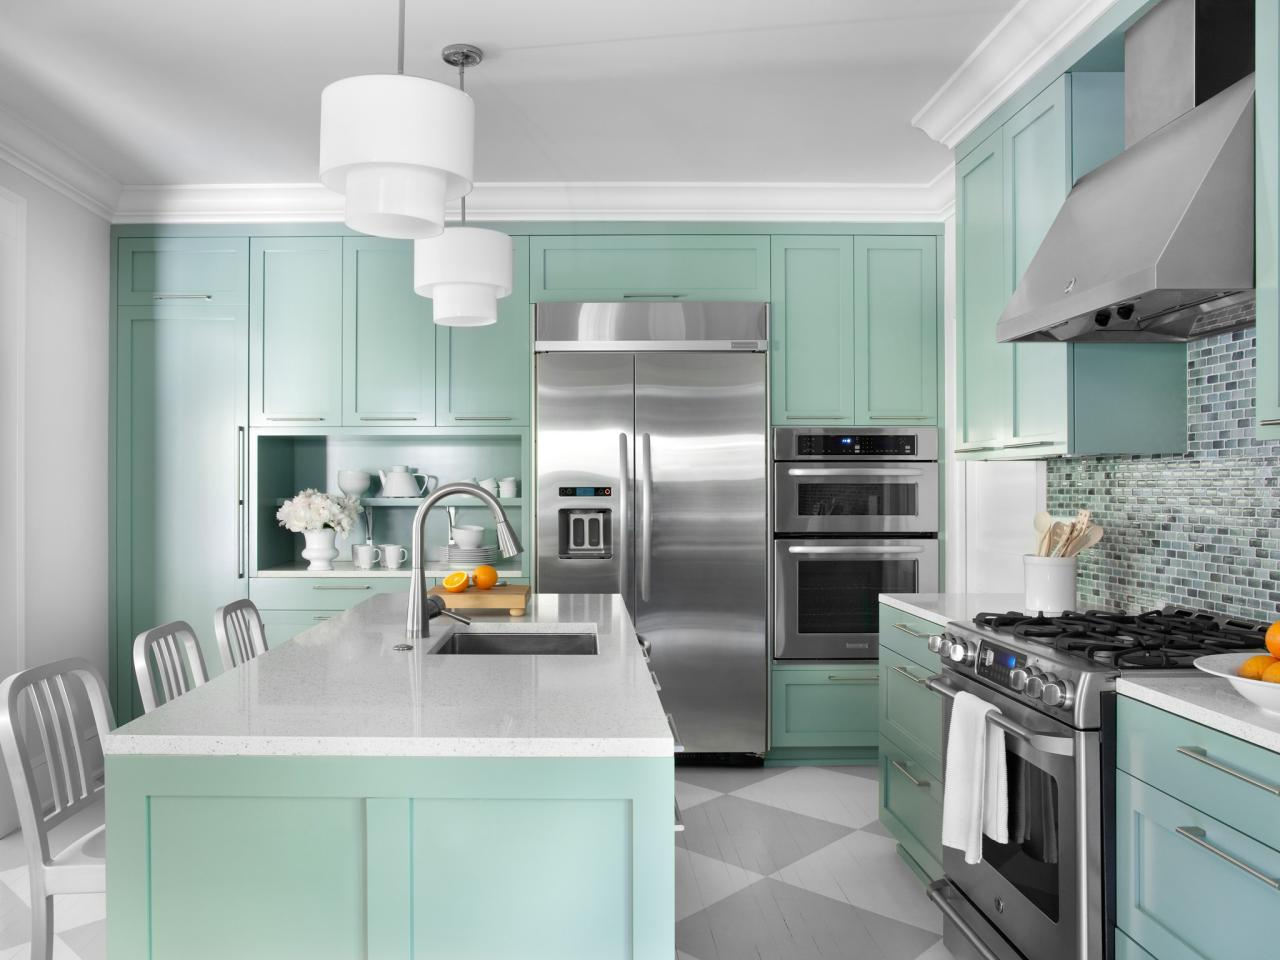 gray green paint for cabinets. color ideas for painting kitchen cabinets gray green paint